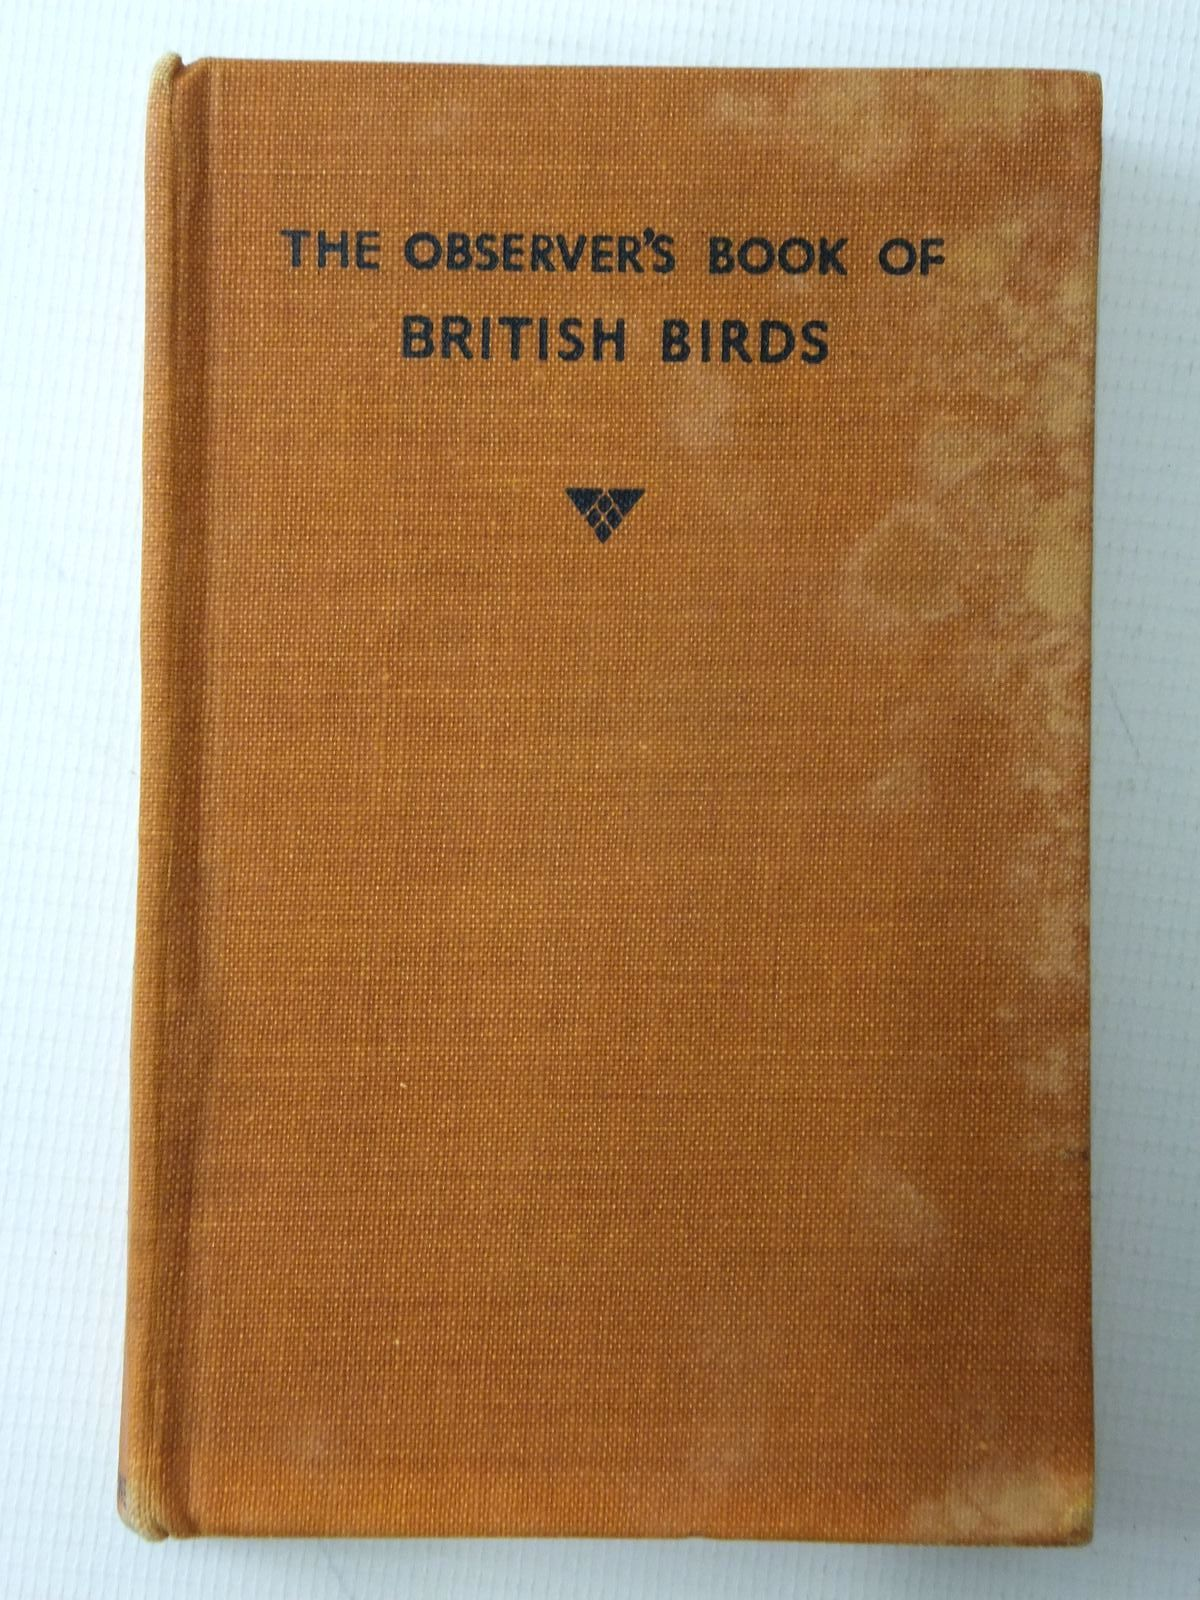 Photo of THE OBSERVER'S BOOK OF BRITISH BIRDS written by Benson, S. Vere published by Frederick Warne & Co Ltd. (STOCK CODE: 2123616)  for sale by Stella & Rose's Books